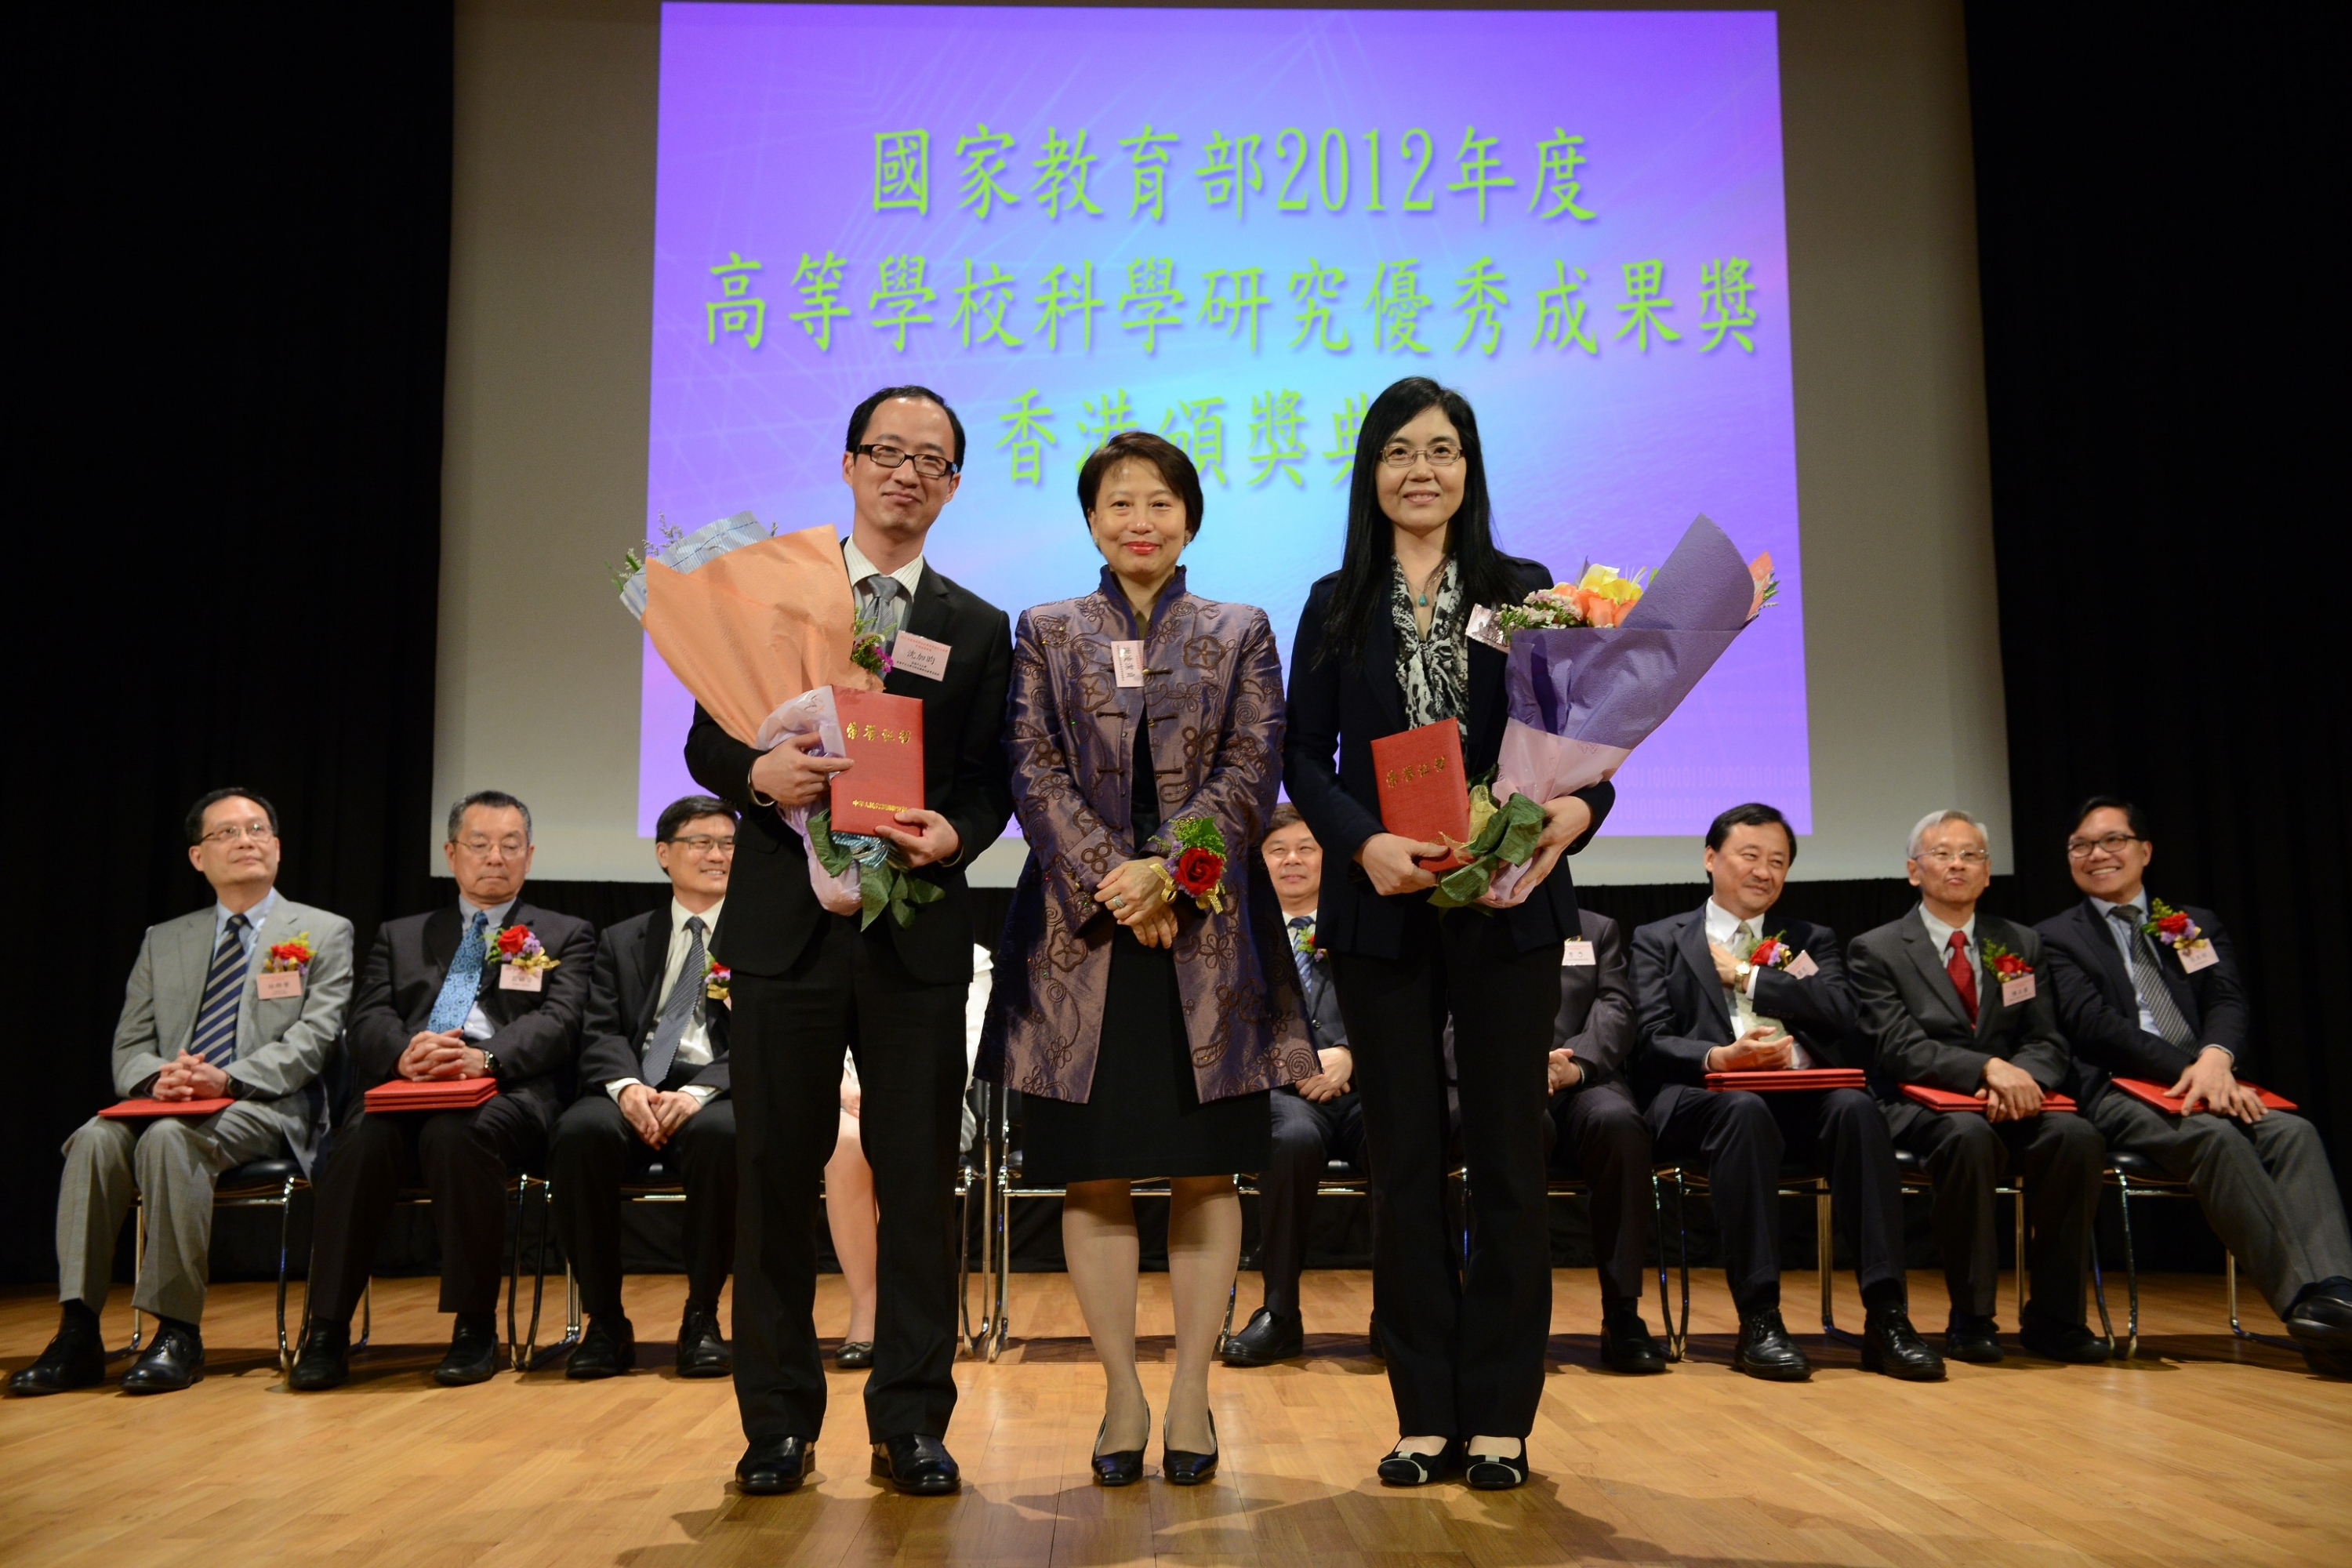 Professor Jun YU, Professor, and Mr. Jiayun SHEN, PhD student, Department of Medicine and Therapeutics, CUHK receive their award certificates from Mrs. Cherry TSE LING Kit-ching